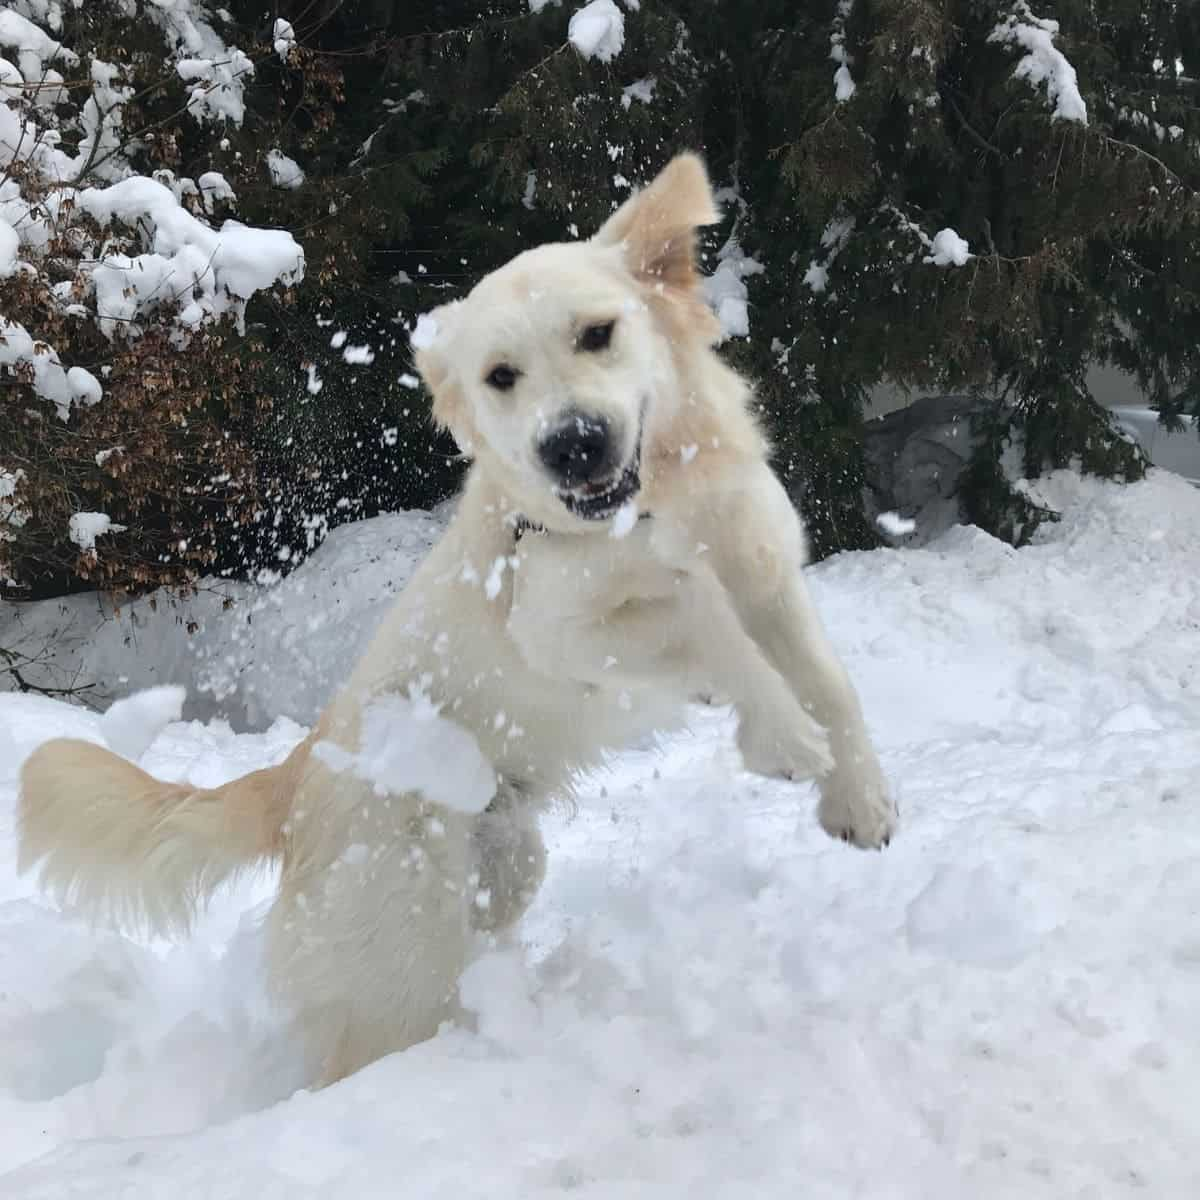 snow and dogs